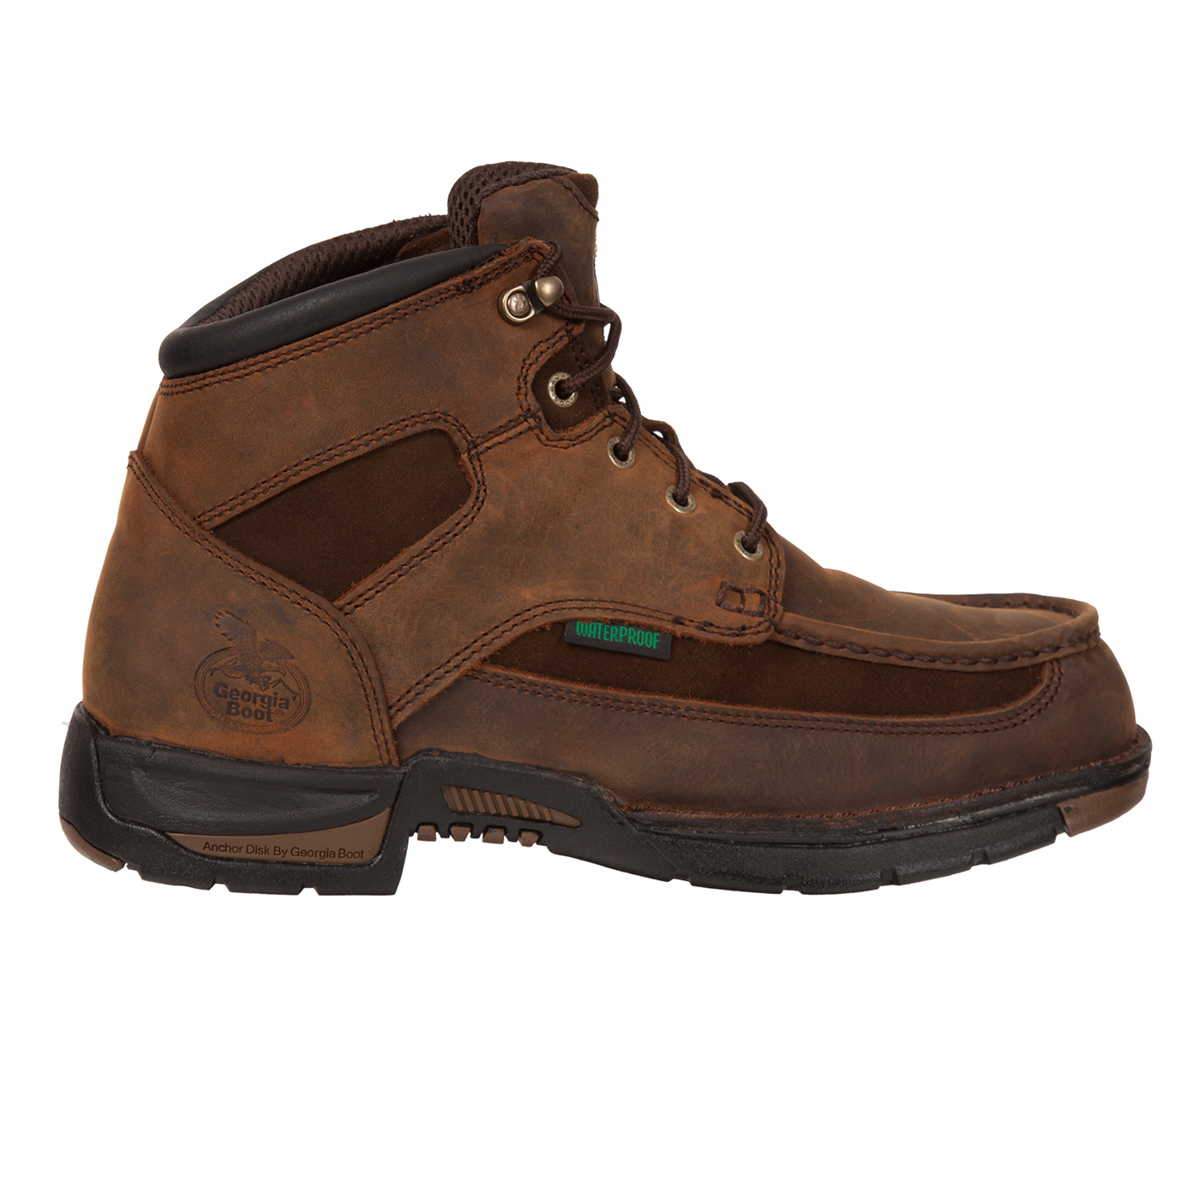 athens mens brown suede leather steel toe